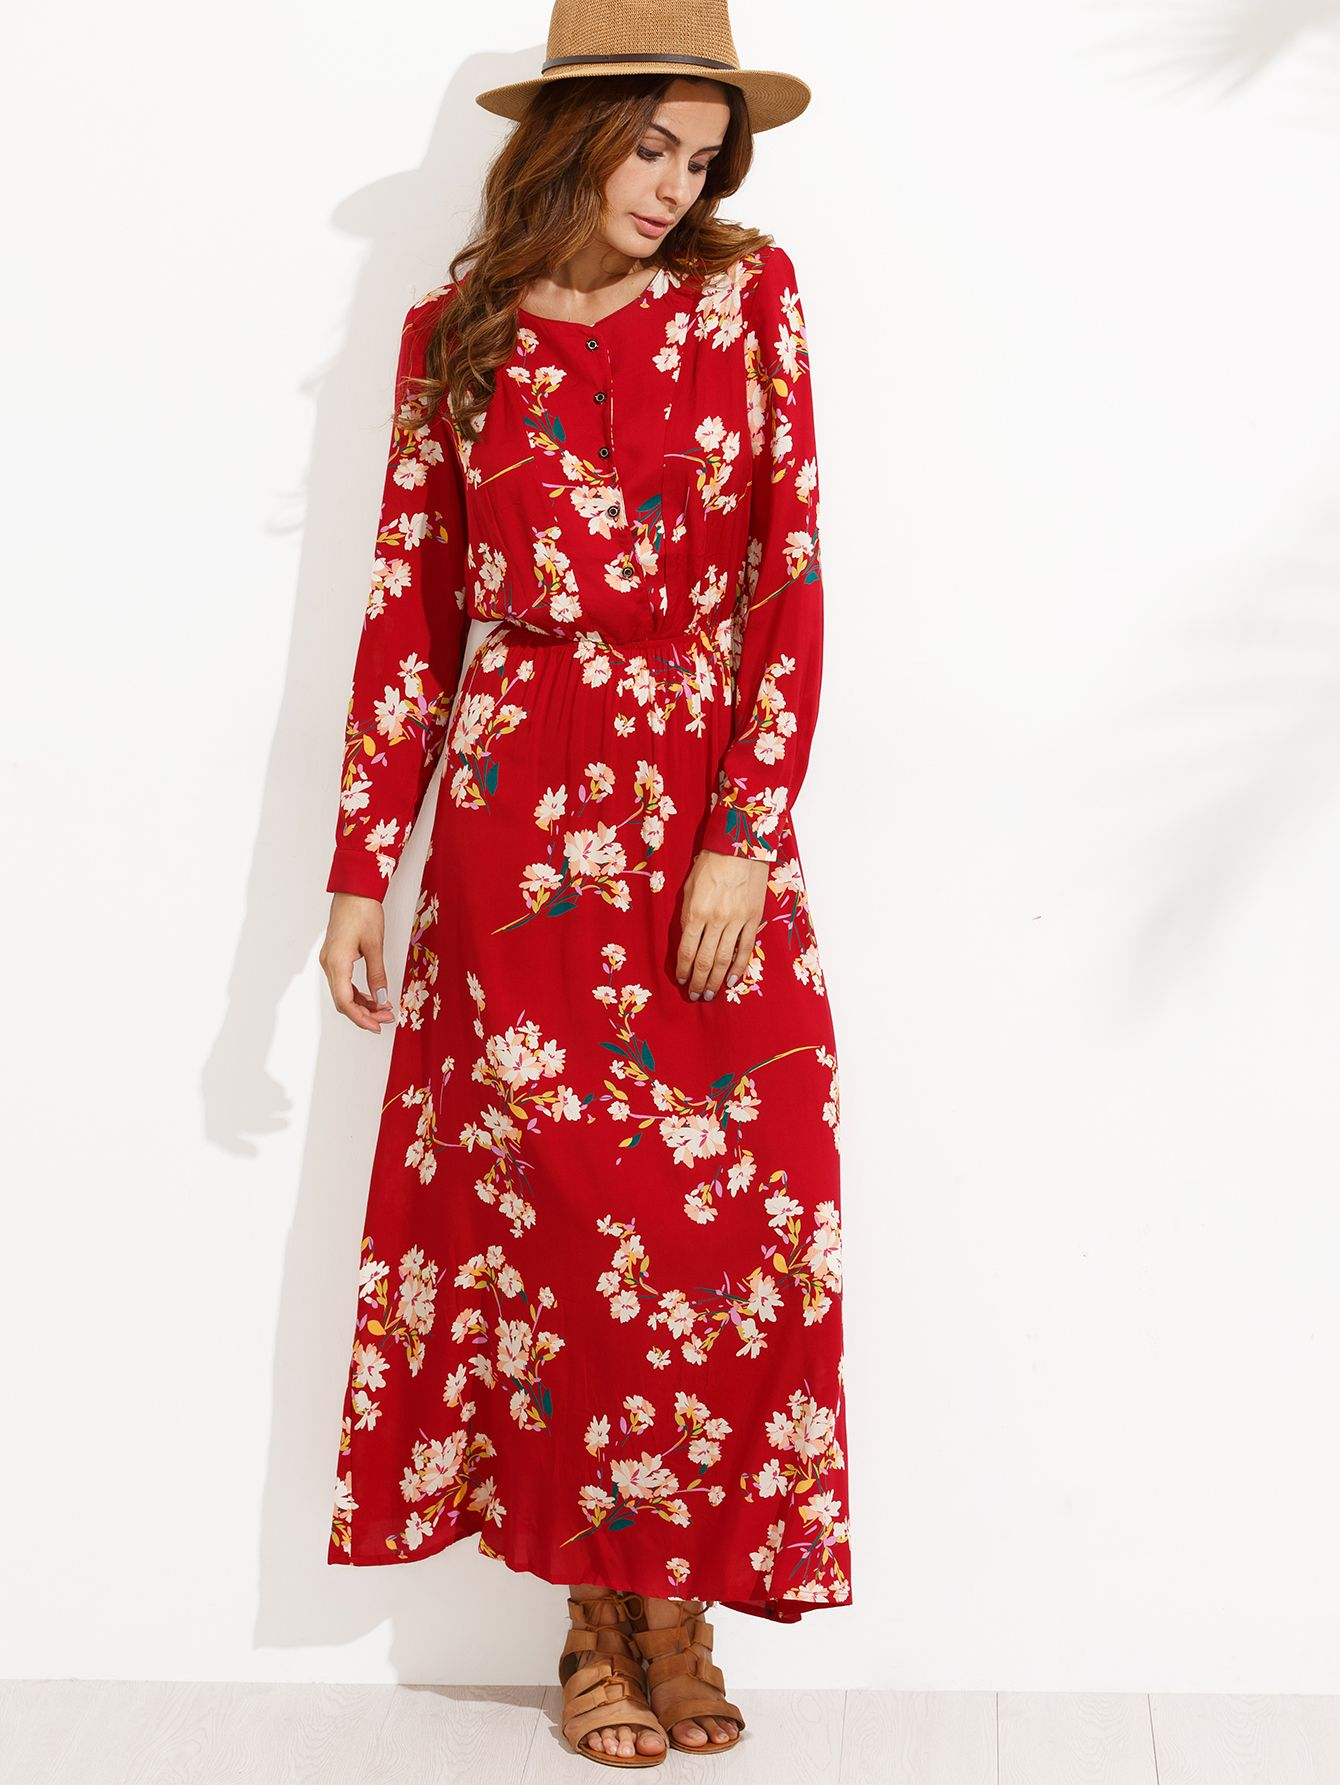 5a81283f210 Red Floral Print Buttons Front Shirt Dress -SheIn(Sheinside ...